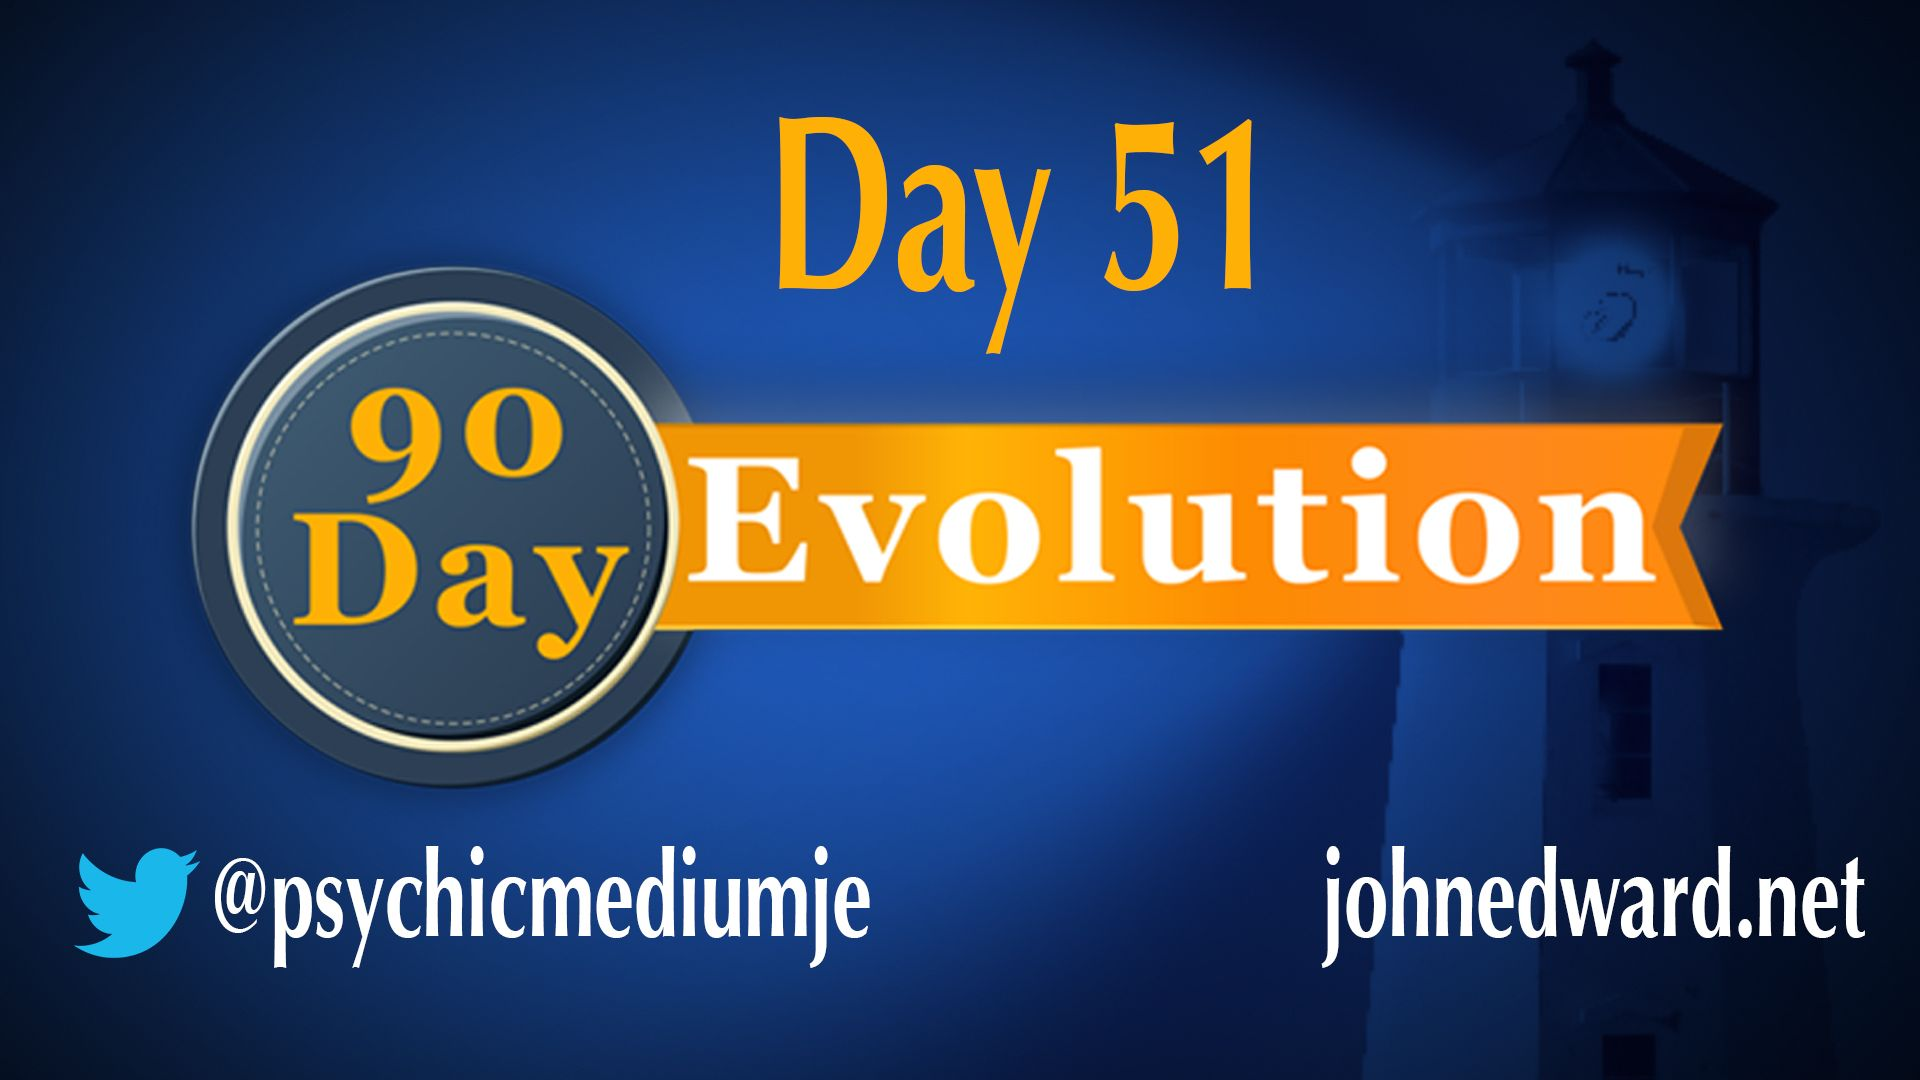 DAY 51 of the 90 Day Evolution focuses on CHALLENGE! Watch now: http://johnedward.net/evolution/5696